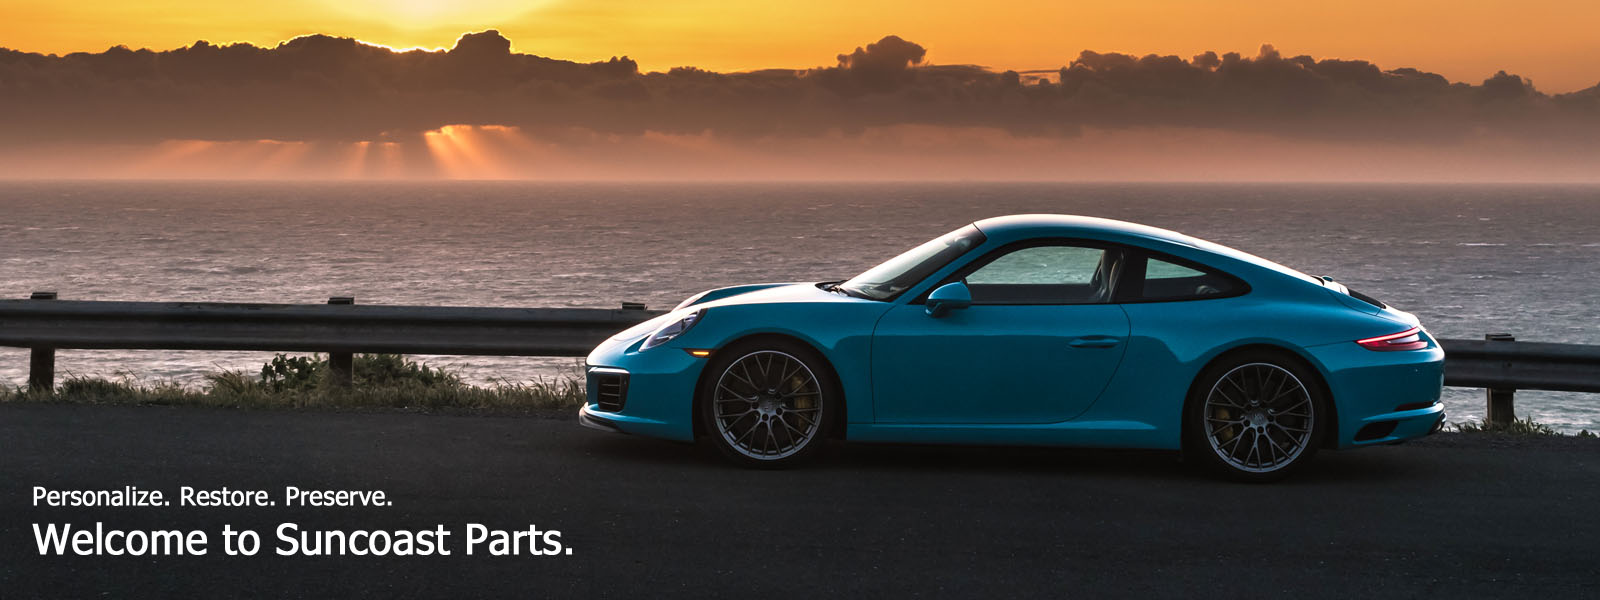 Parts Special Offers National Lease Offers Service & Parts Service. Service Appointment Request Porsche Scheduled Maintenance Plan Body Shop Service Specials Parts. Suncoast Parts Order Parts and Accessories Parts & Accessories Specials Tequipment Service Hours.